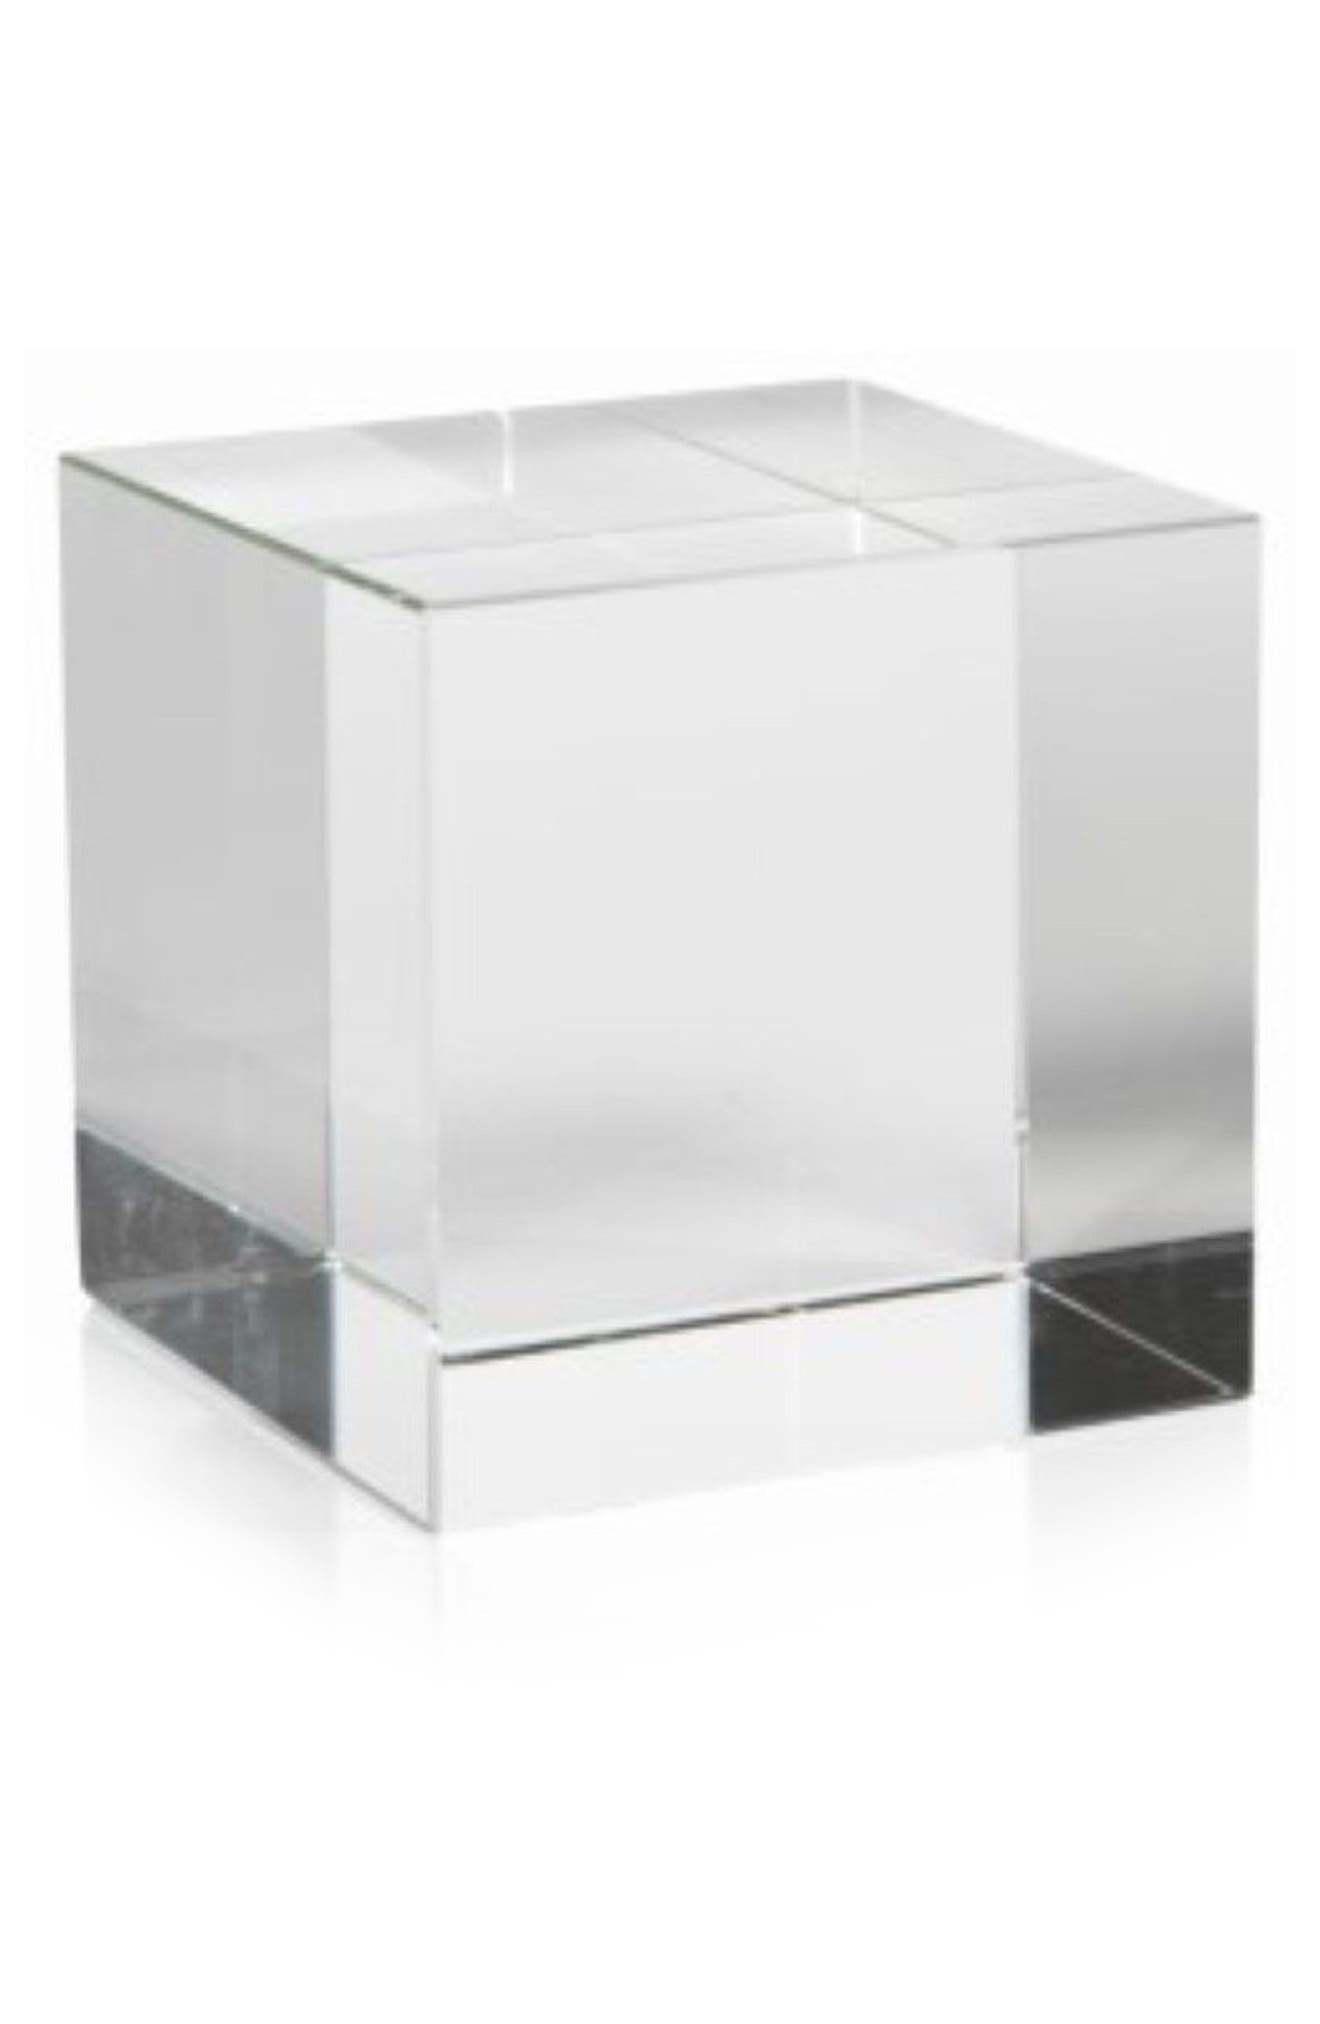 Jacy Glass Cube Decoration,                             Main thumbnail 1, color,                             100